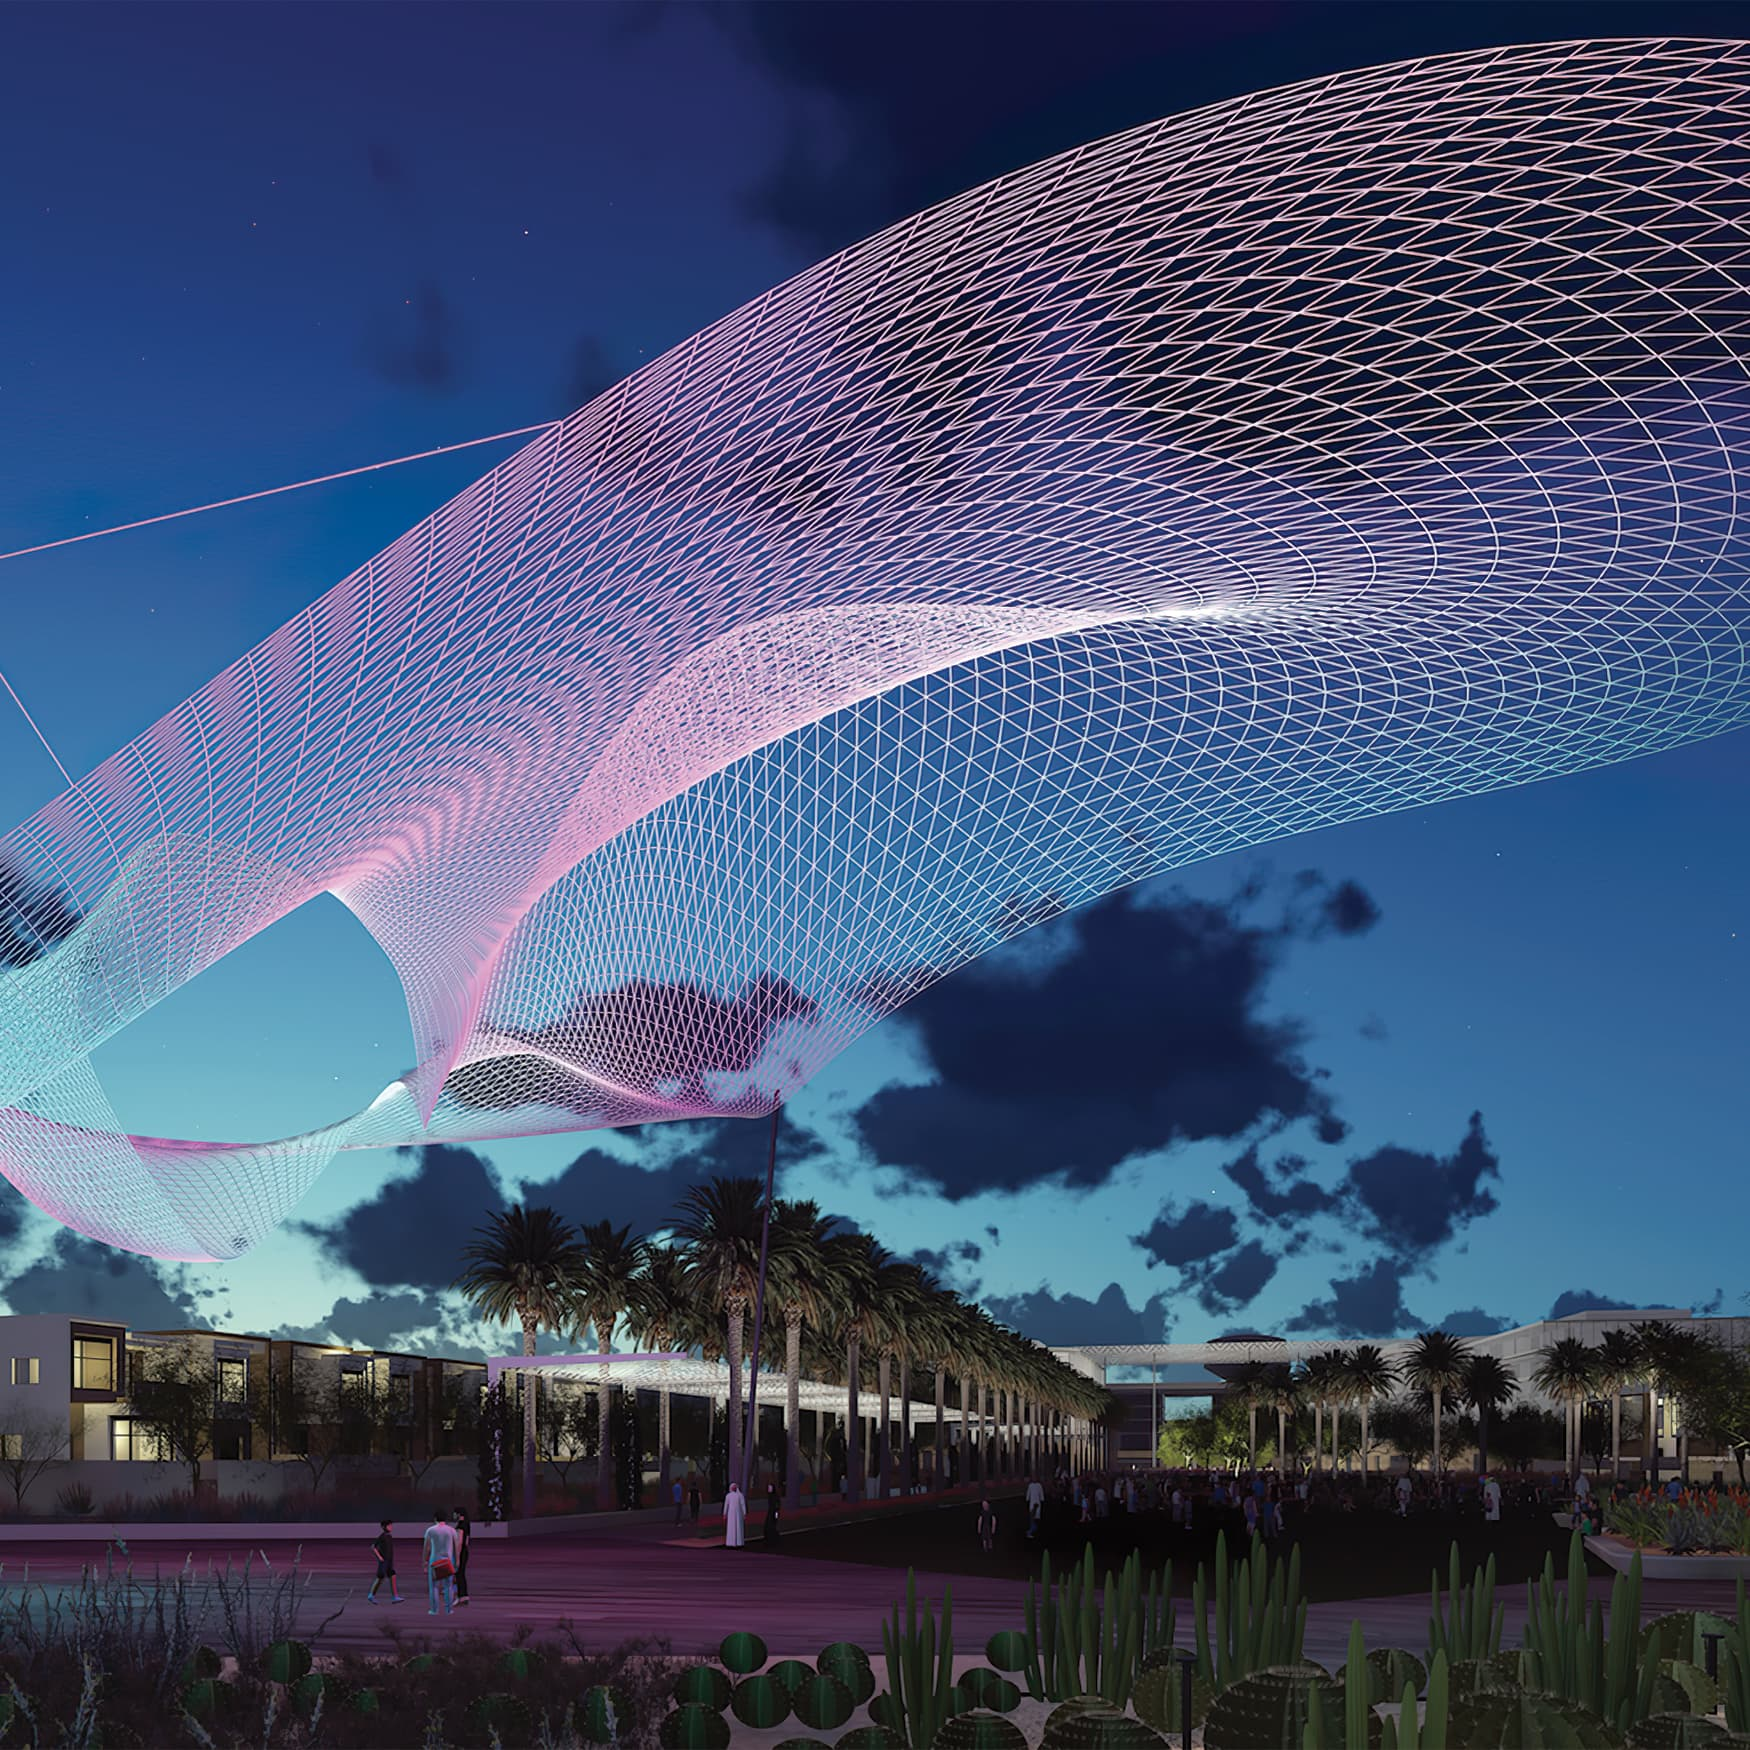 Al Raffah project at night with art installation flowing overhead